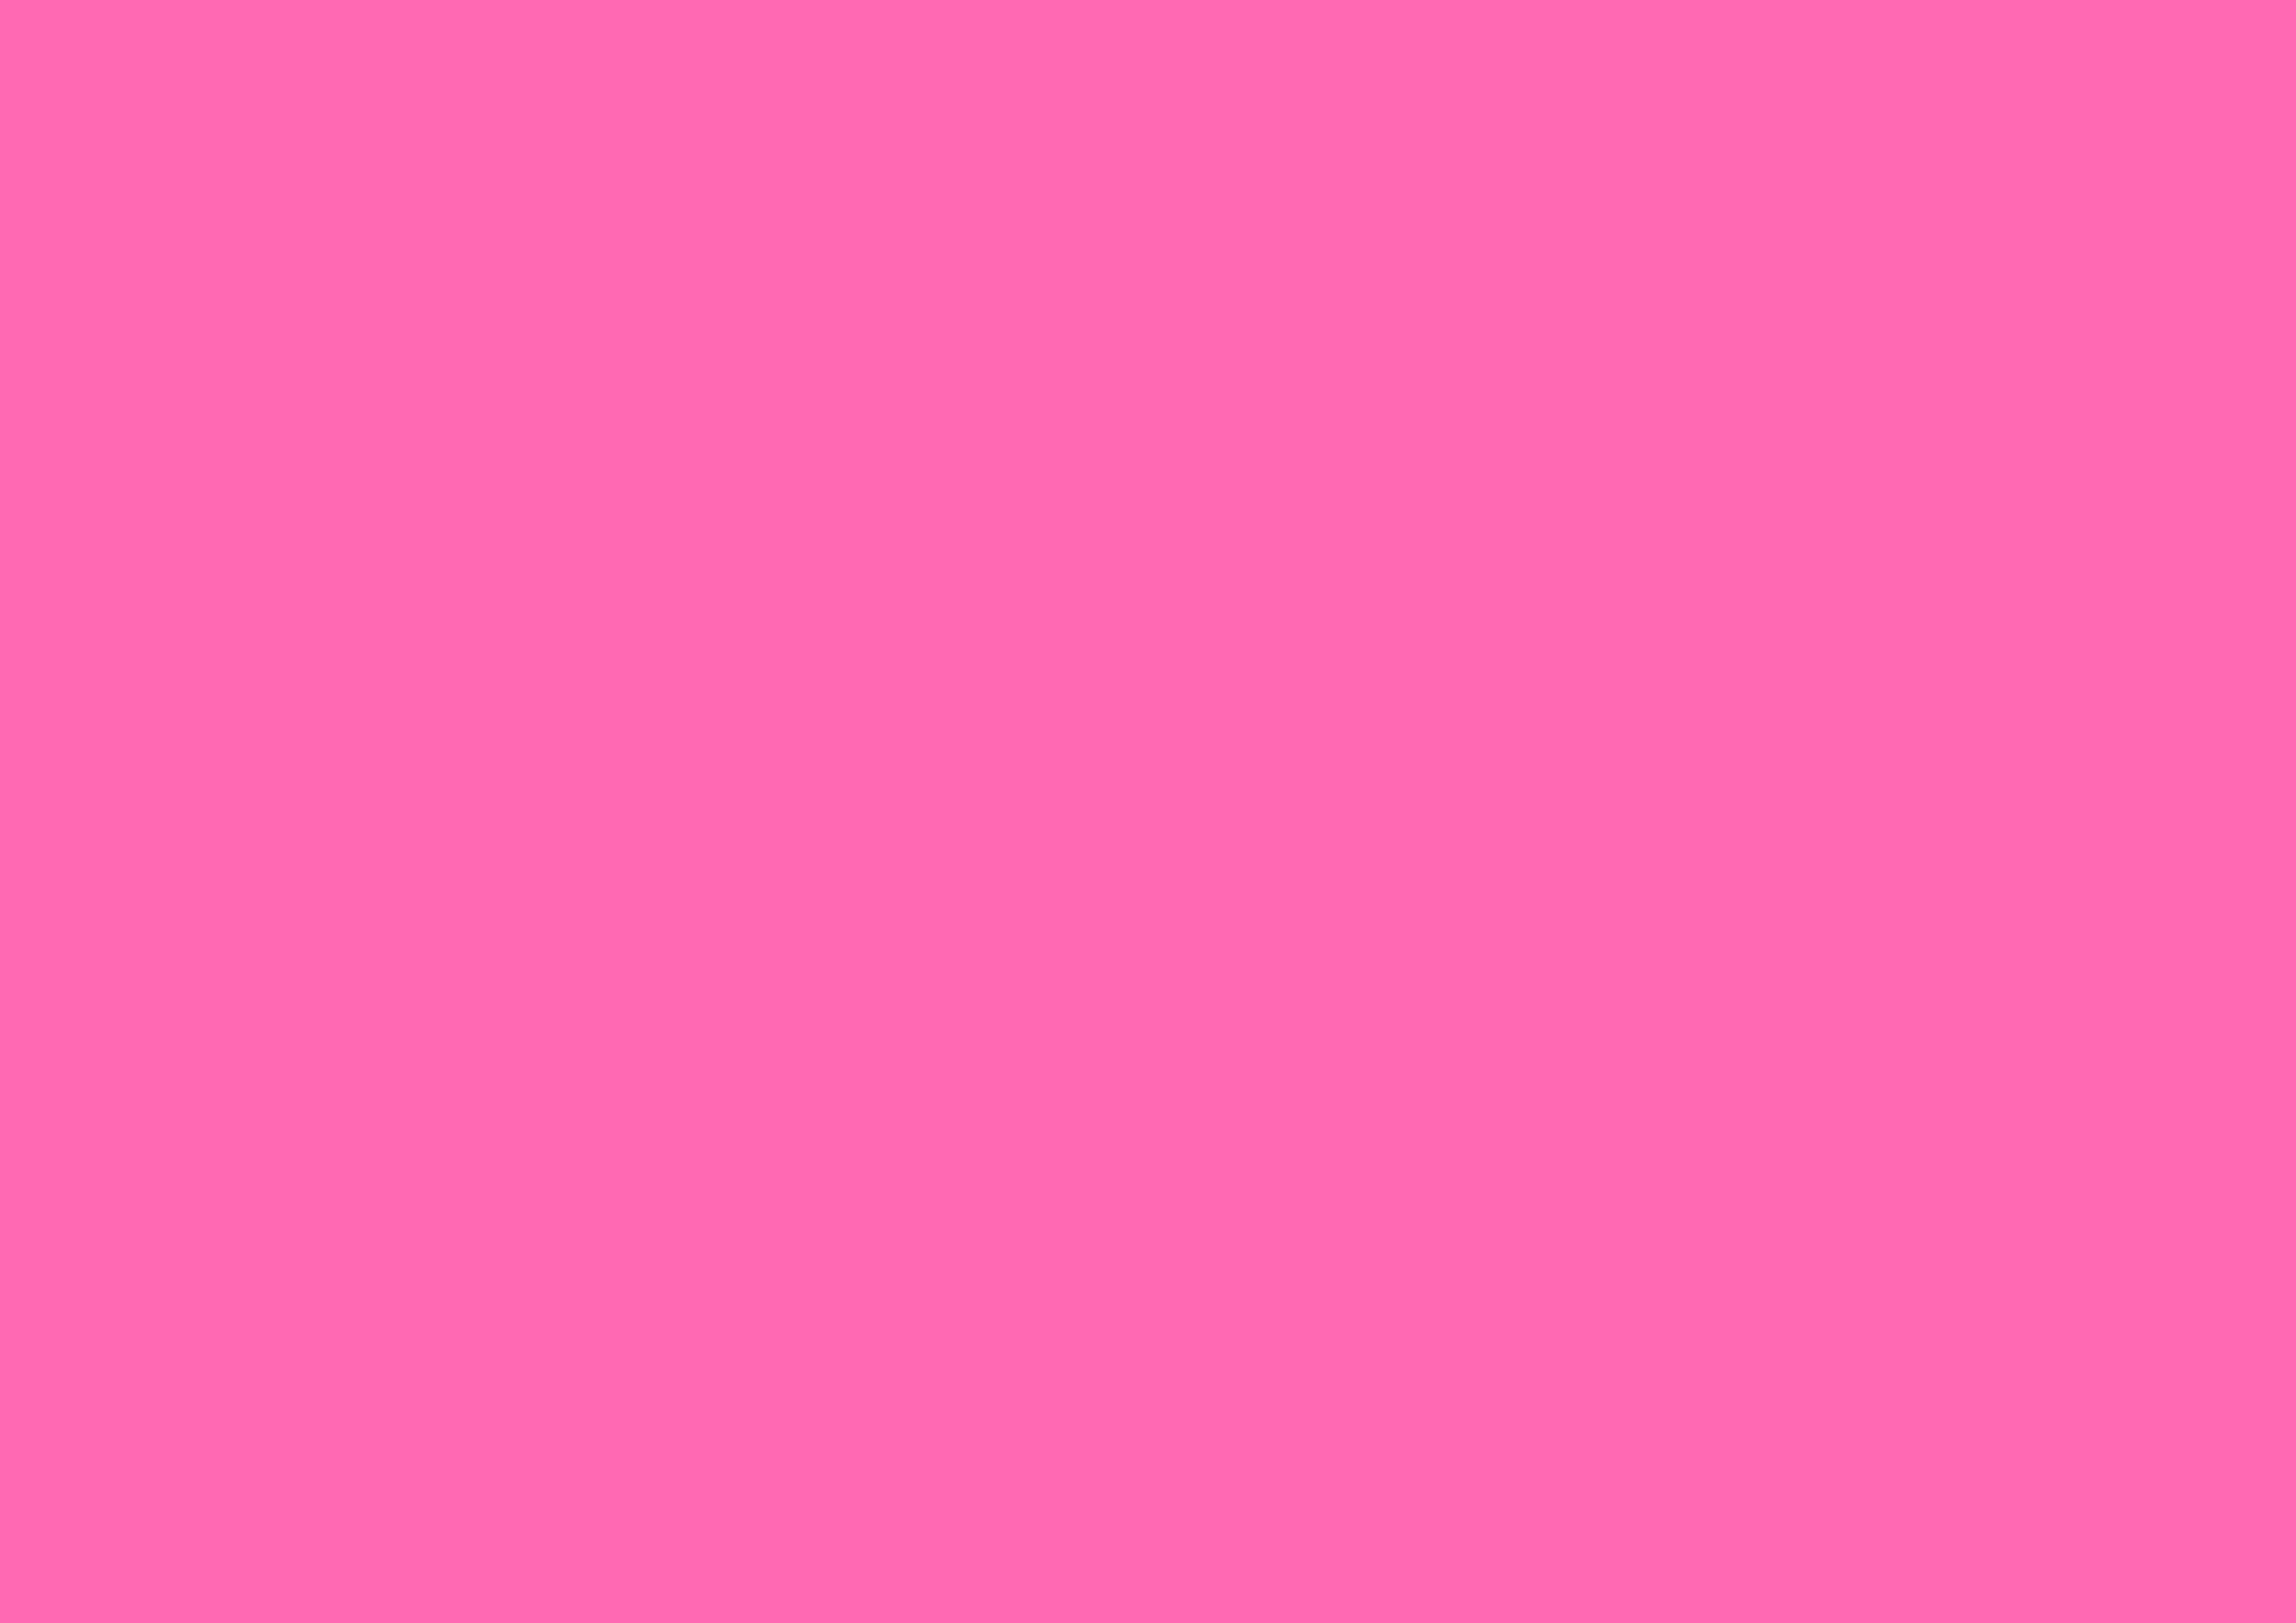 3508x2480 Hot Pink Solid Color Background